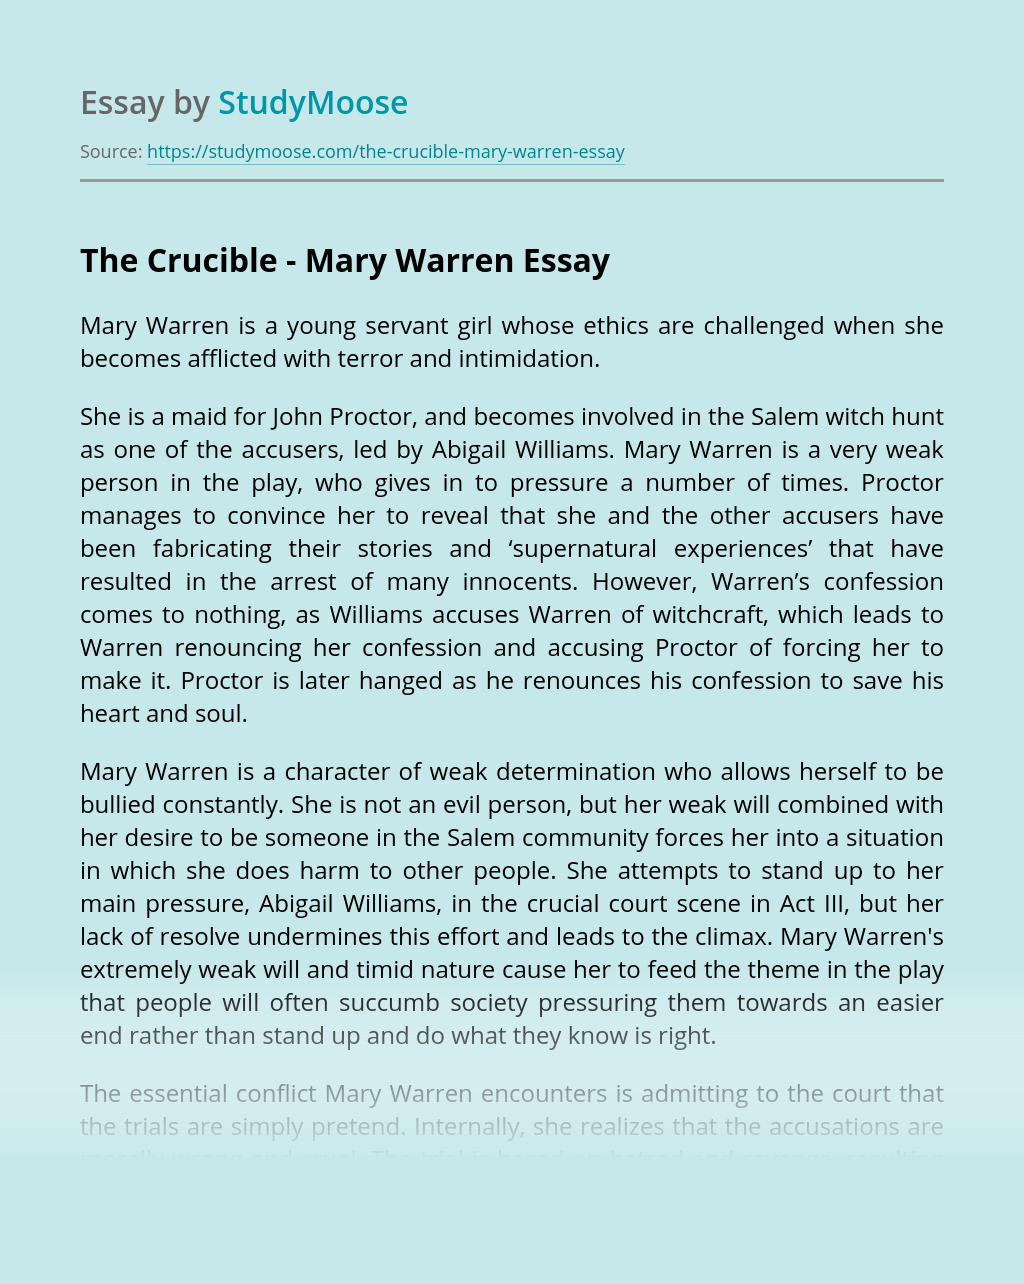 The Crucible - Mary Warren